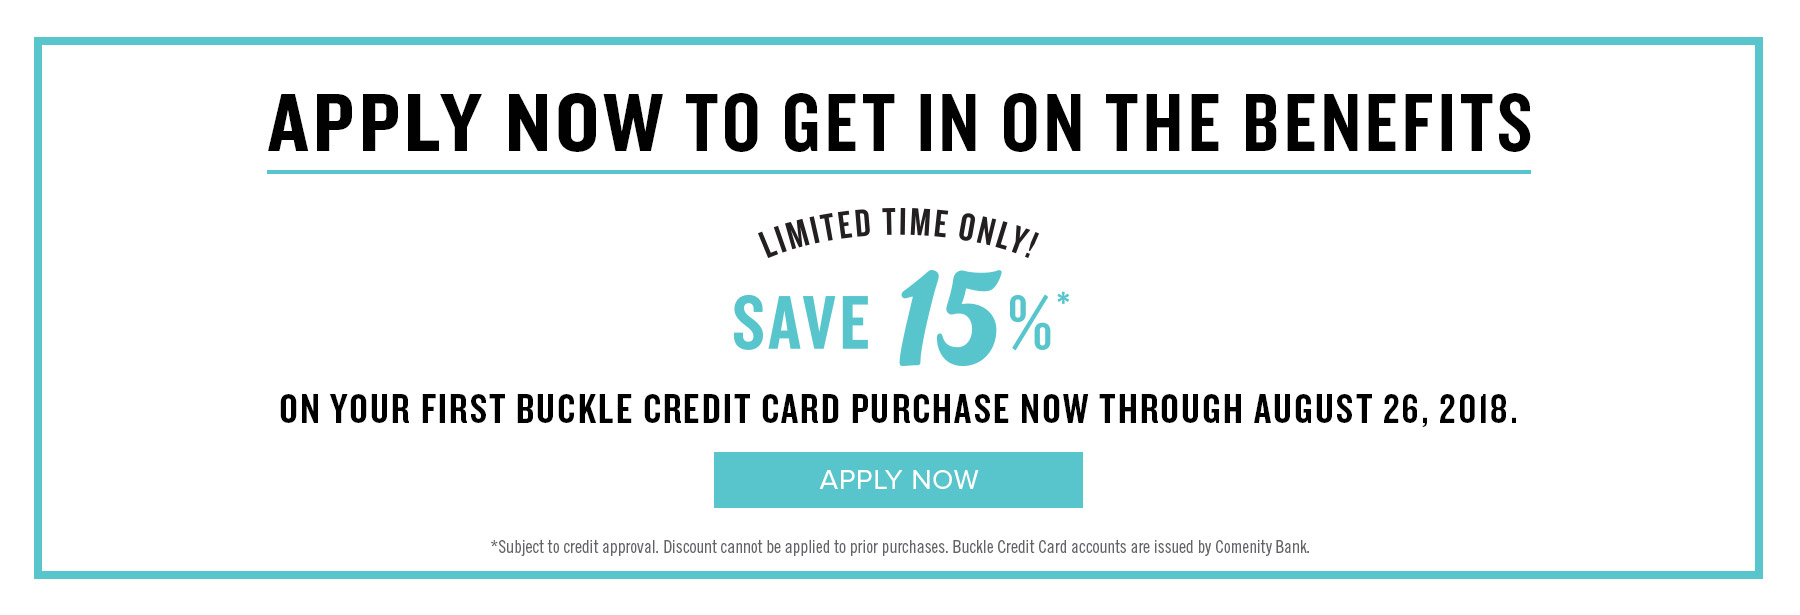 Apply now to get in on the benefits. Limited time only 15%! Save 15% on your first Buckle Credit Card purchase through August 26th.